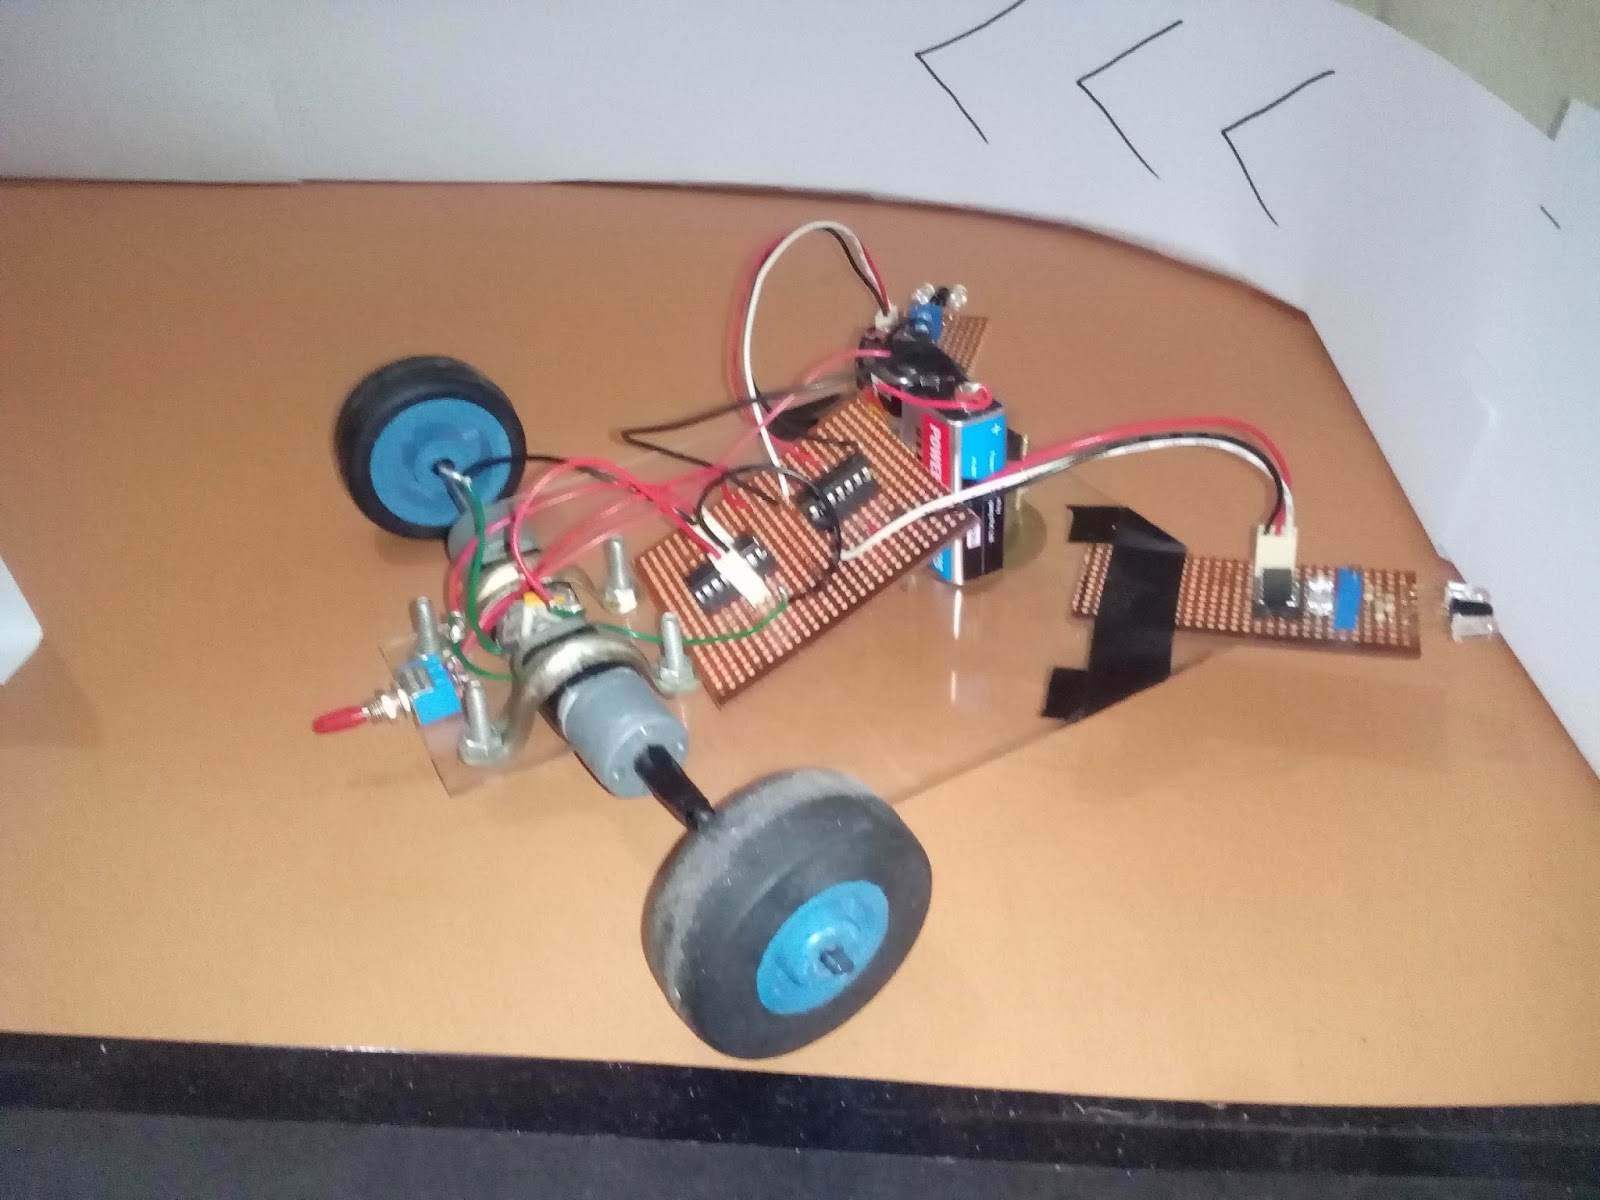 hight resolution of toy robot wiring diagram wiring librarytoy robot wiring diagram